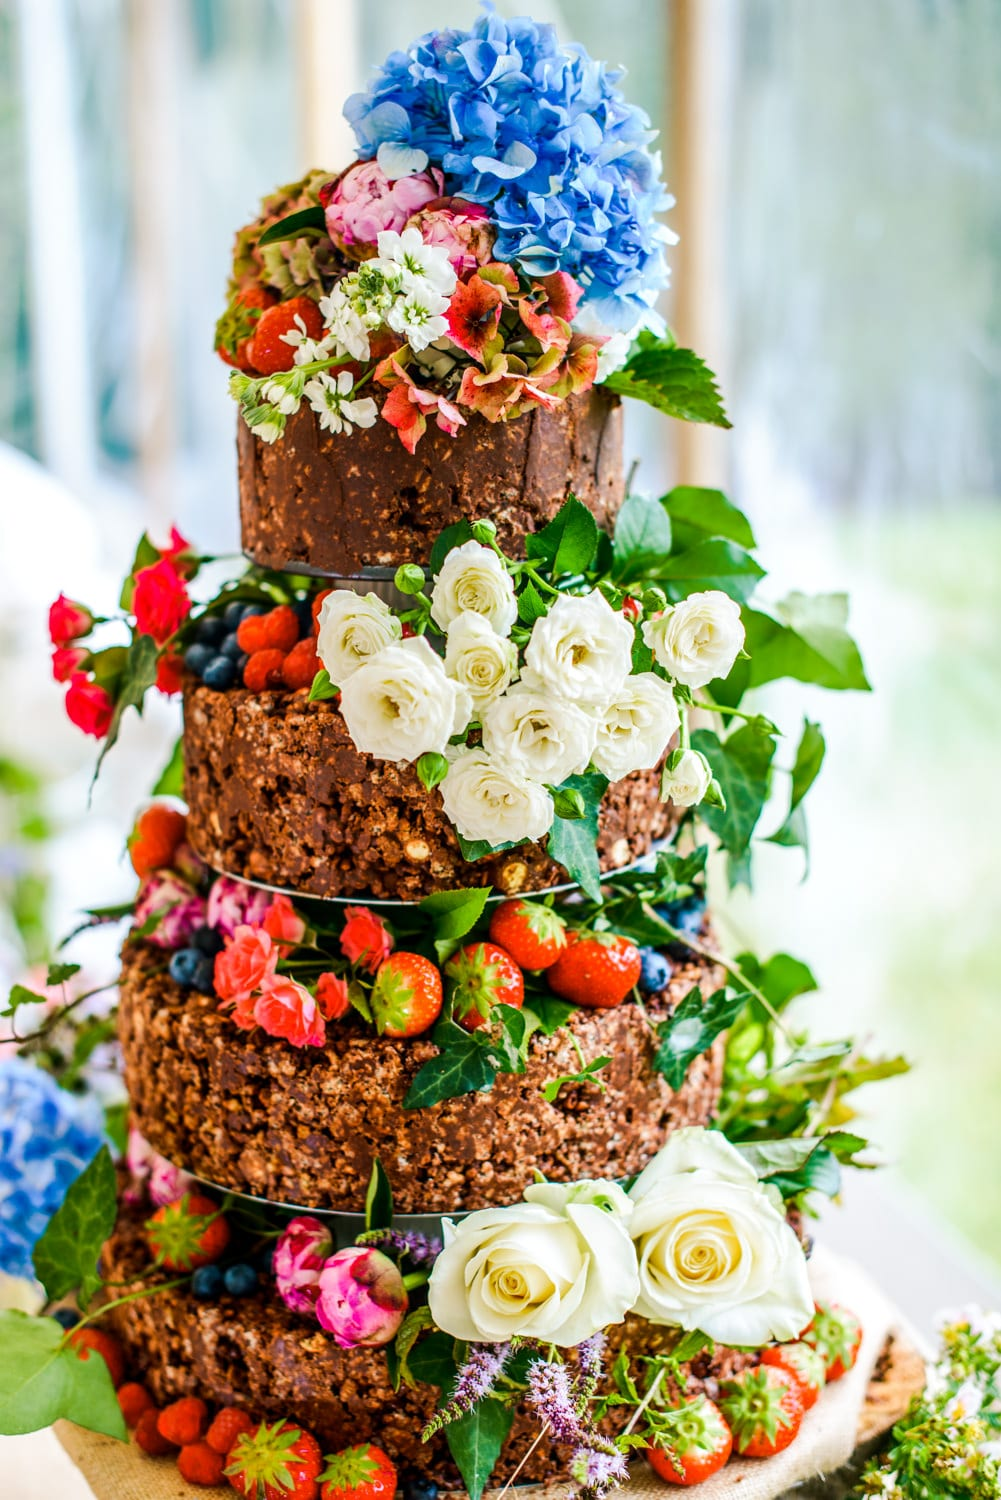 chocolate rice crispy wedding cake with flowers and fruit